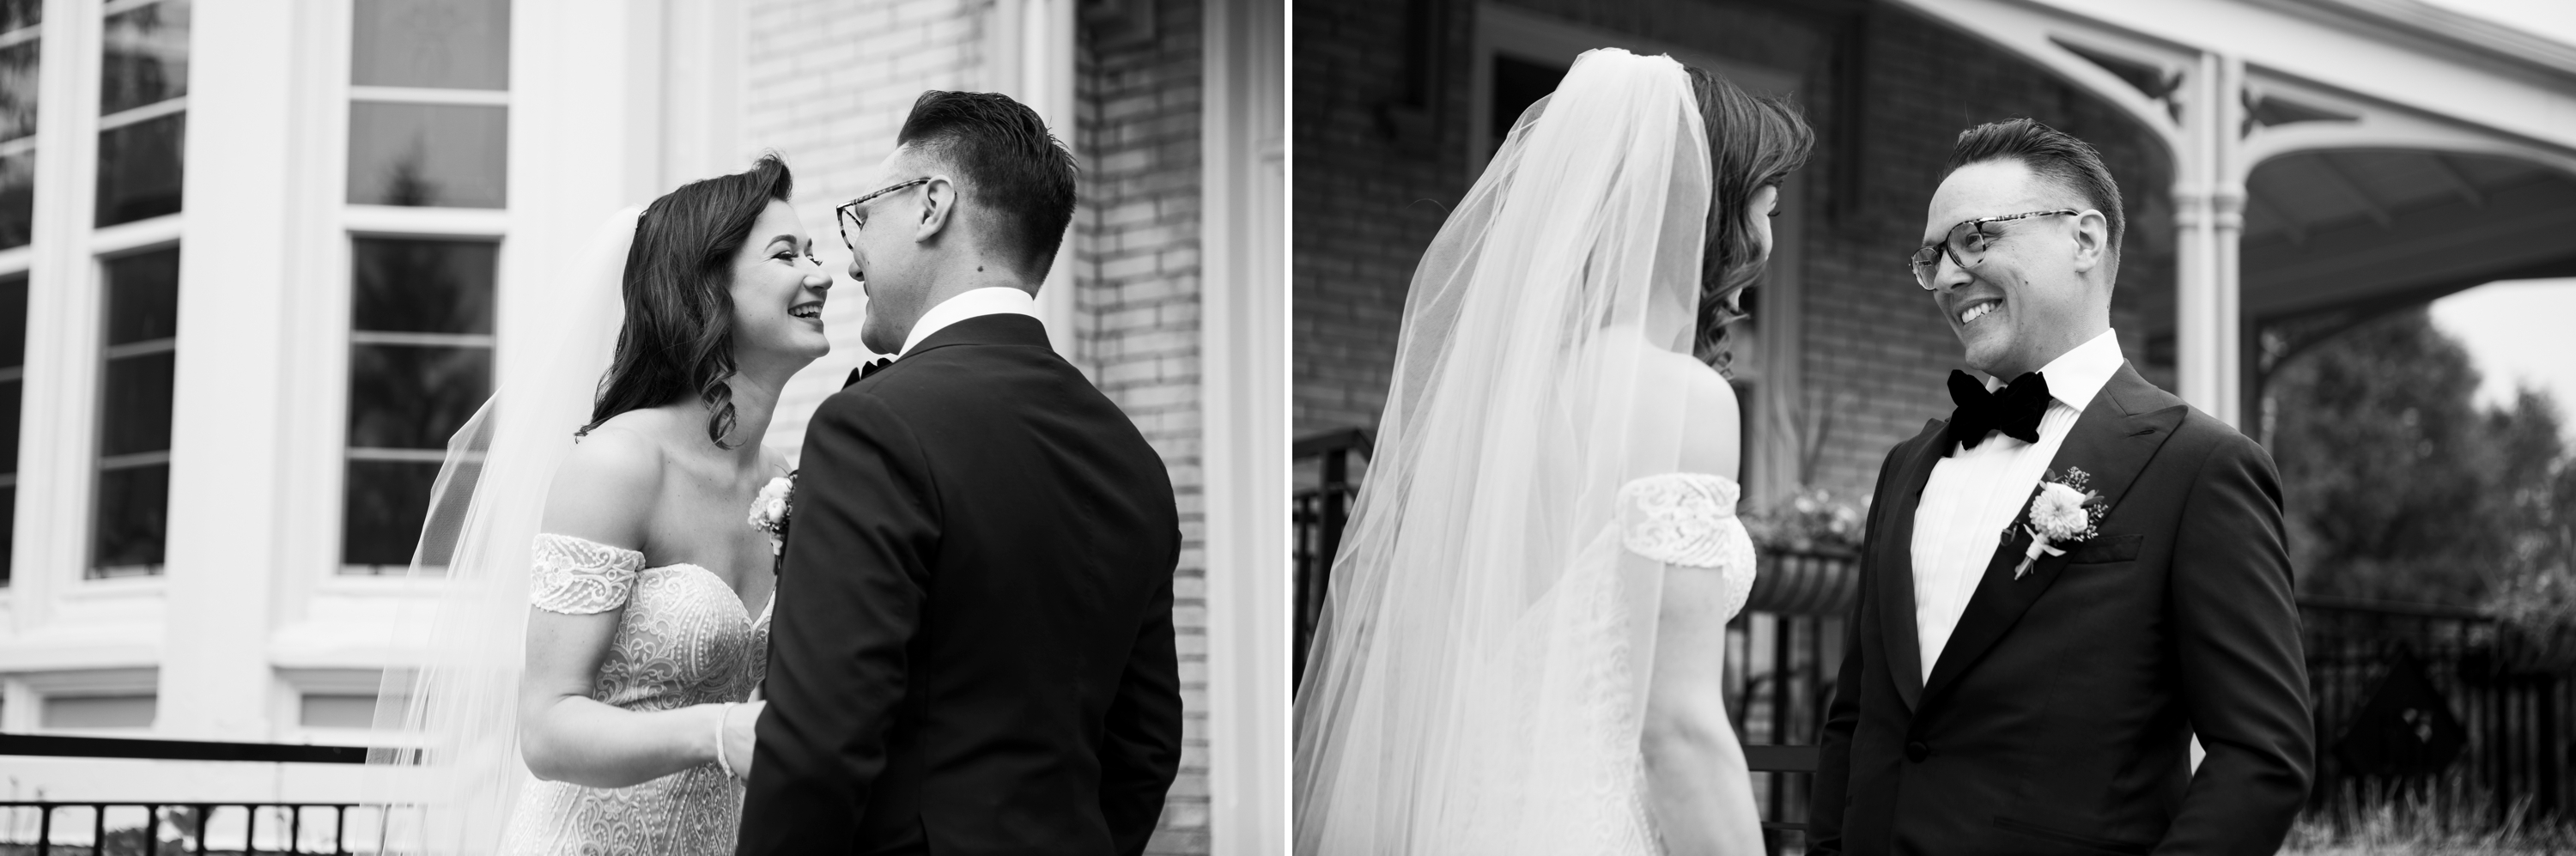 Josh Zsuzsi Pal Photography Wedding Elmhurst Inn Studio Lumen Bride Groom Black and White